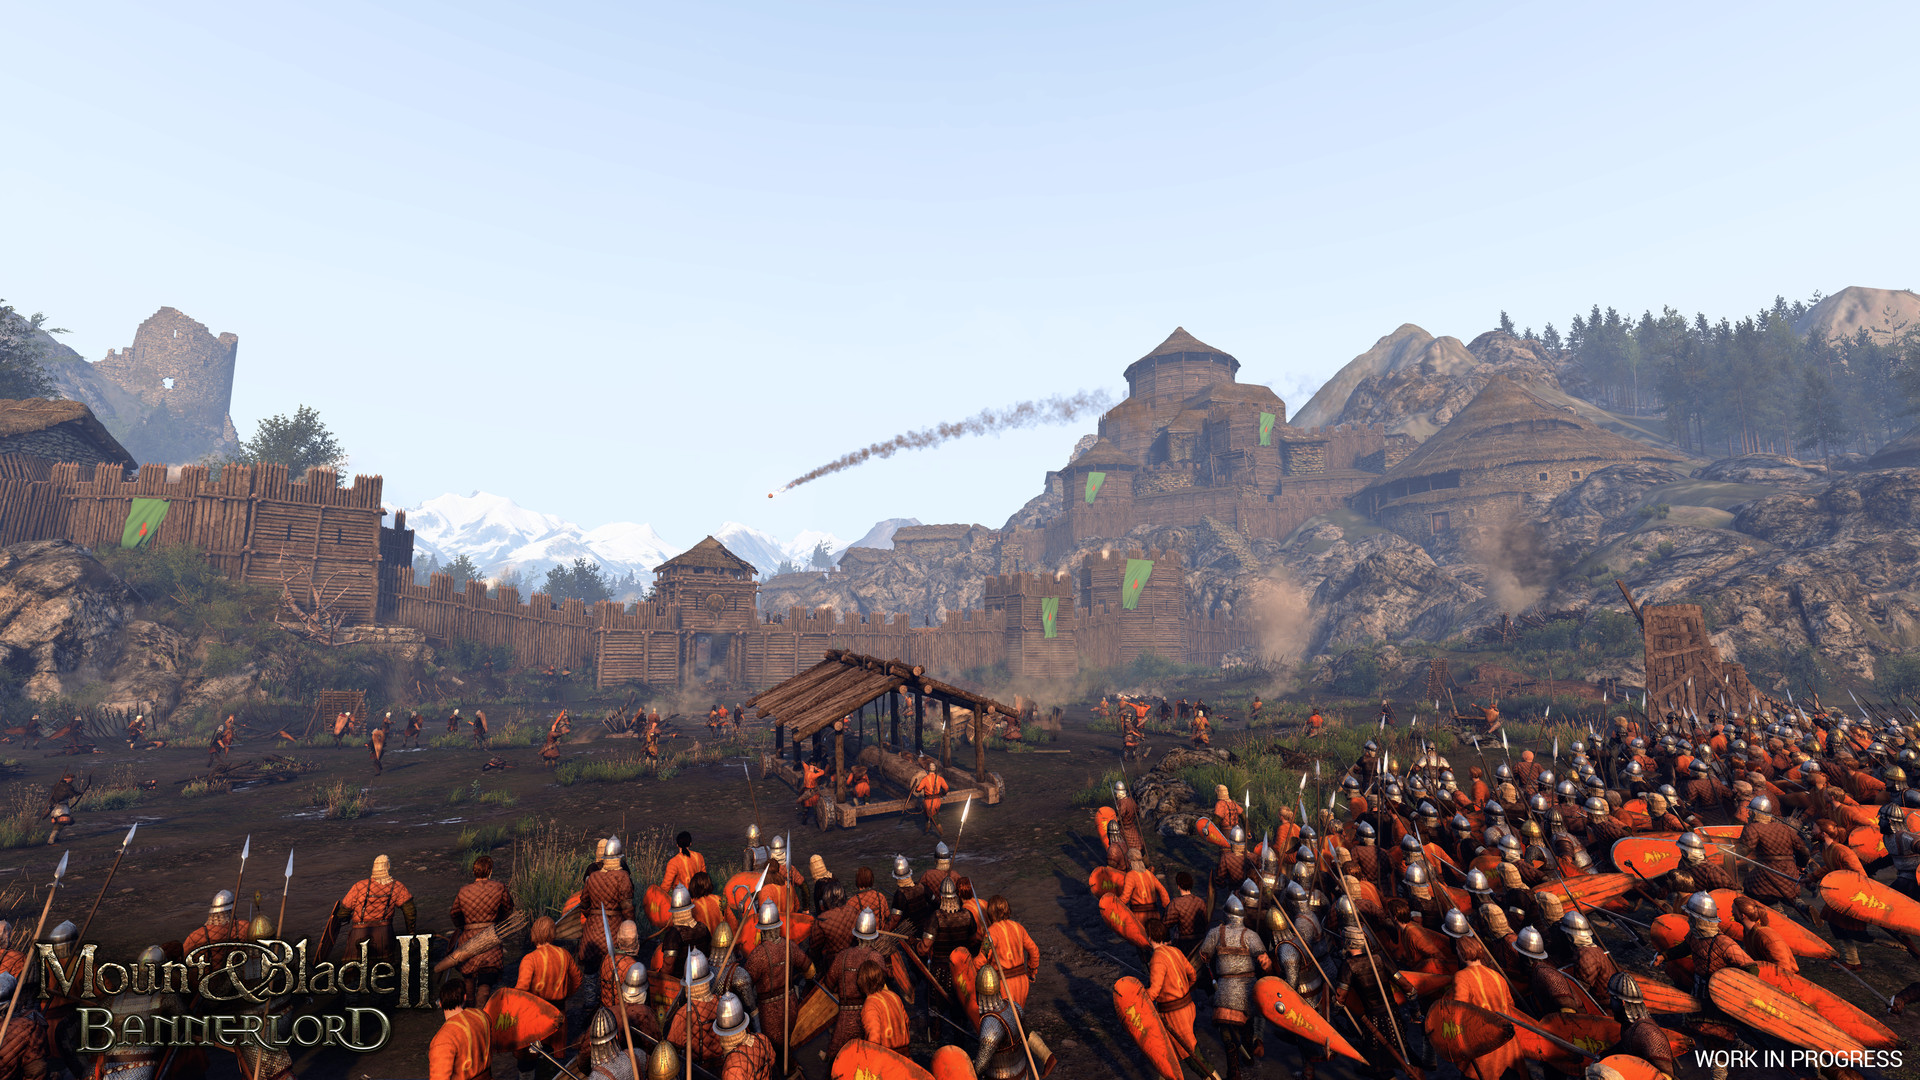 Mount & Blade II: Bannerlord on Steam